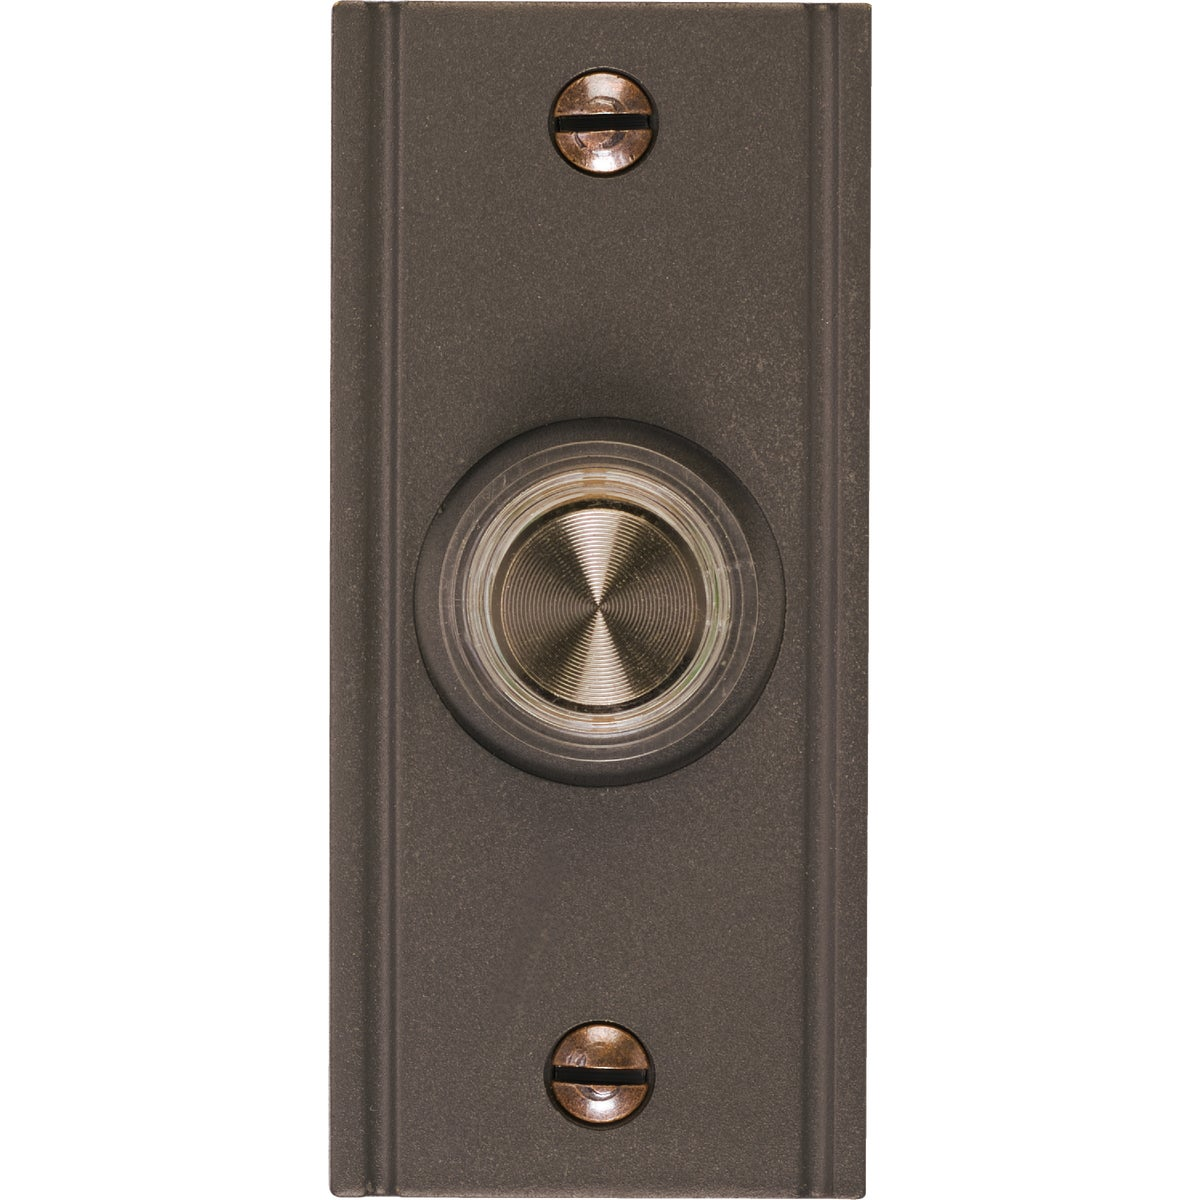 RUST LIGHTED PUSHBUTTON - DH1632L by Thomas & Betts